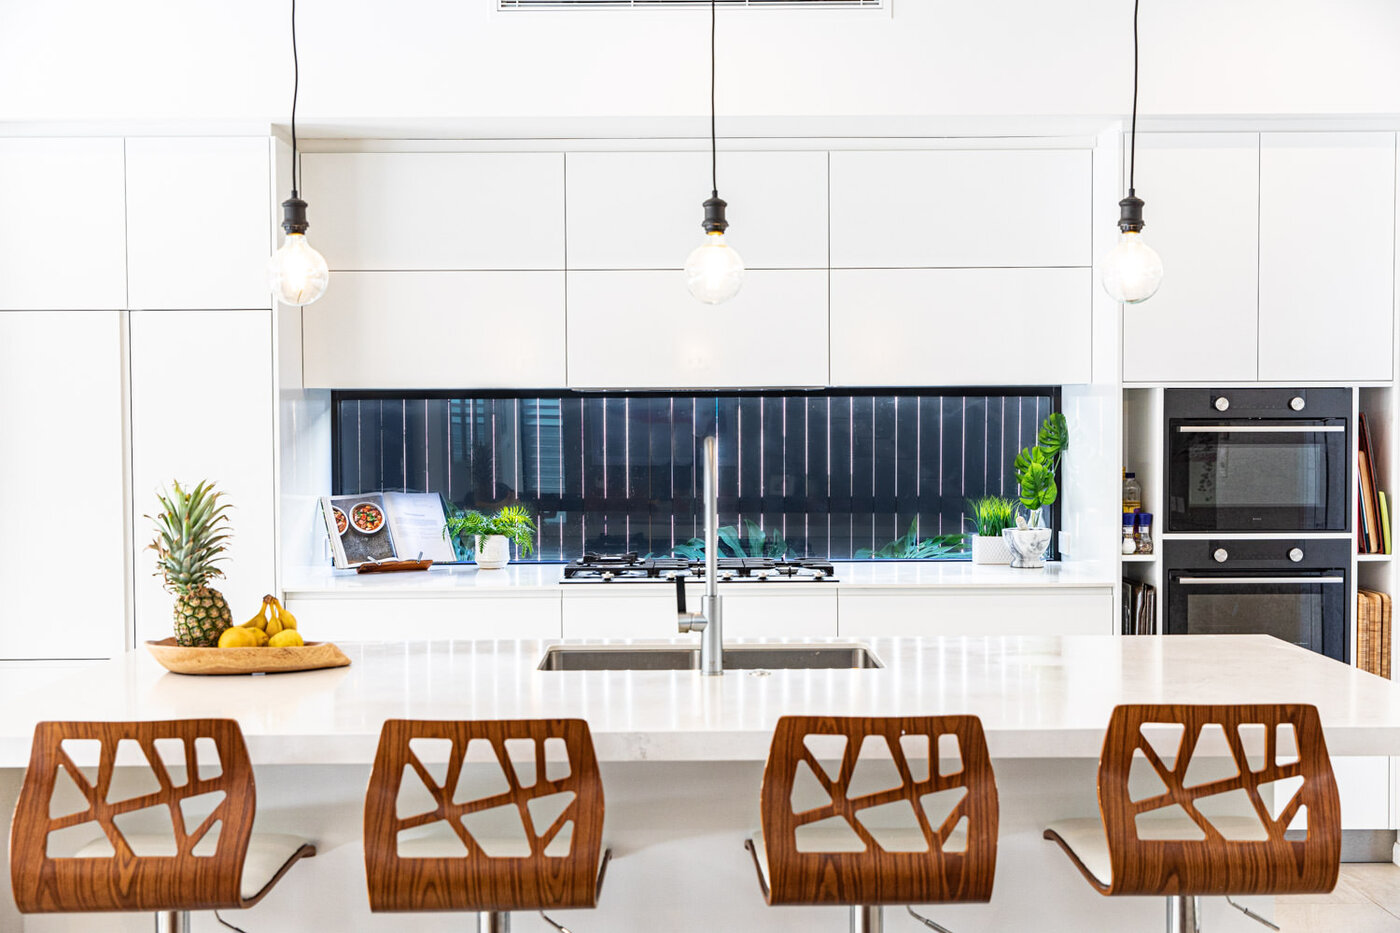 Luxury kitchen with bar stools and pendants at an island bench